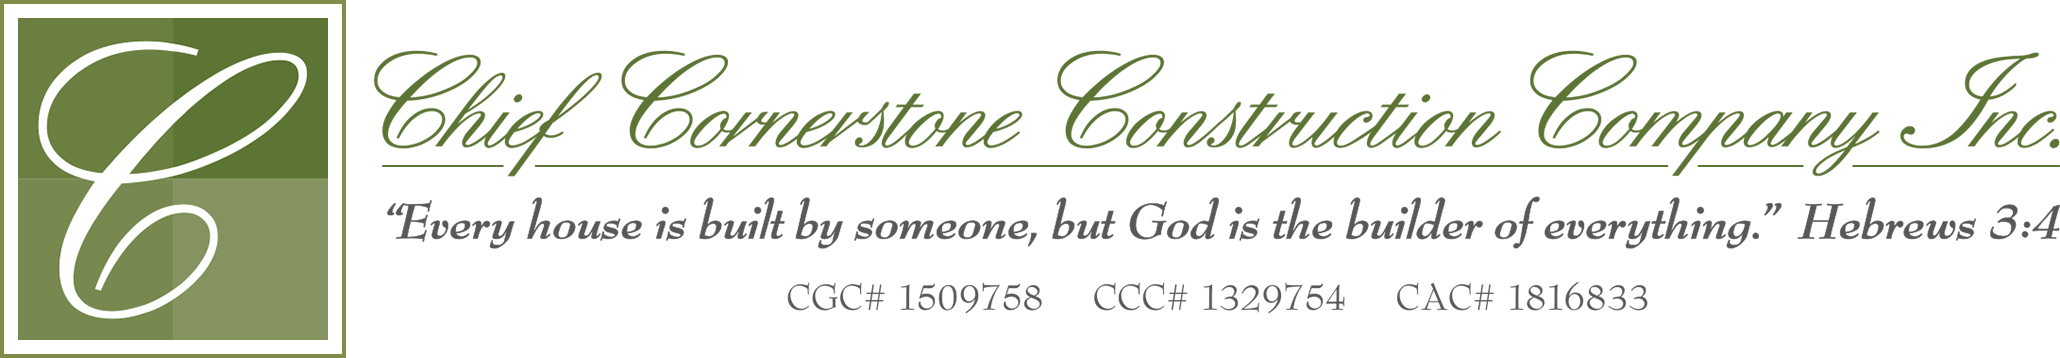 Chief Cornerstone Construction Company